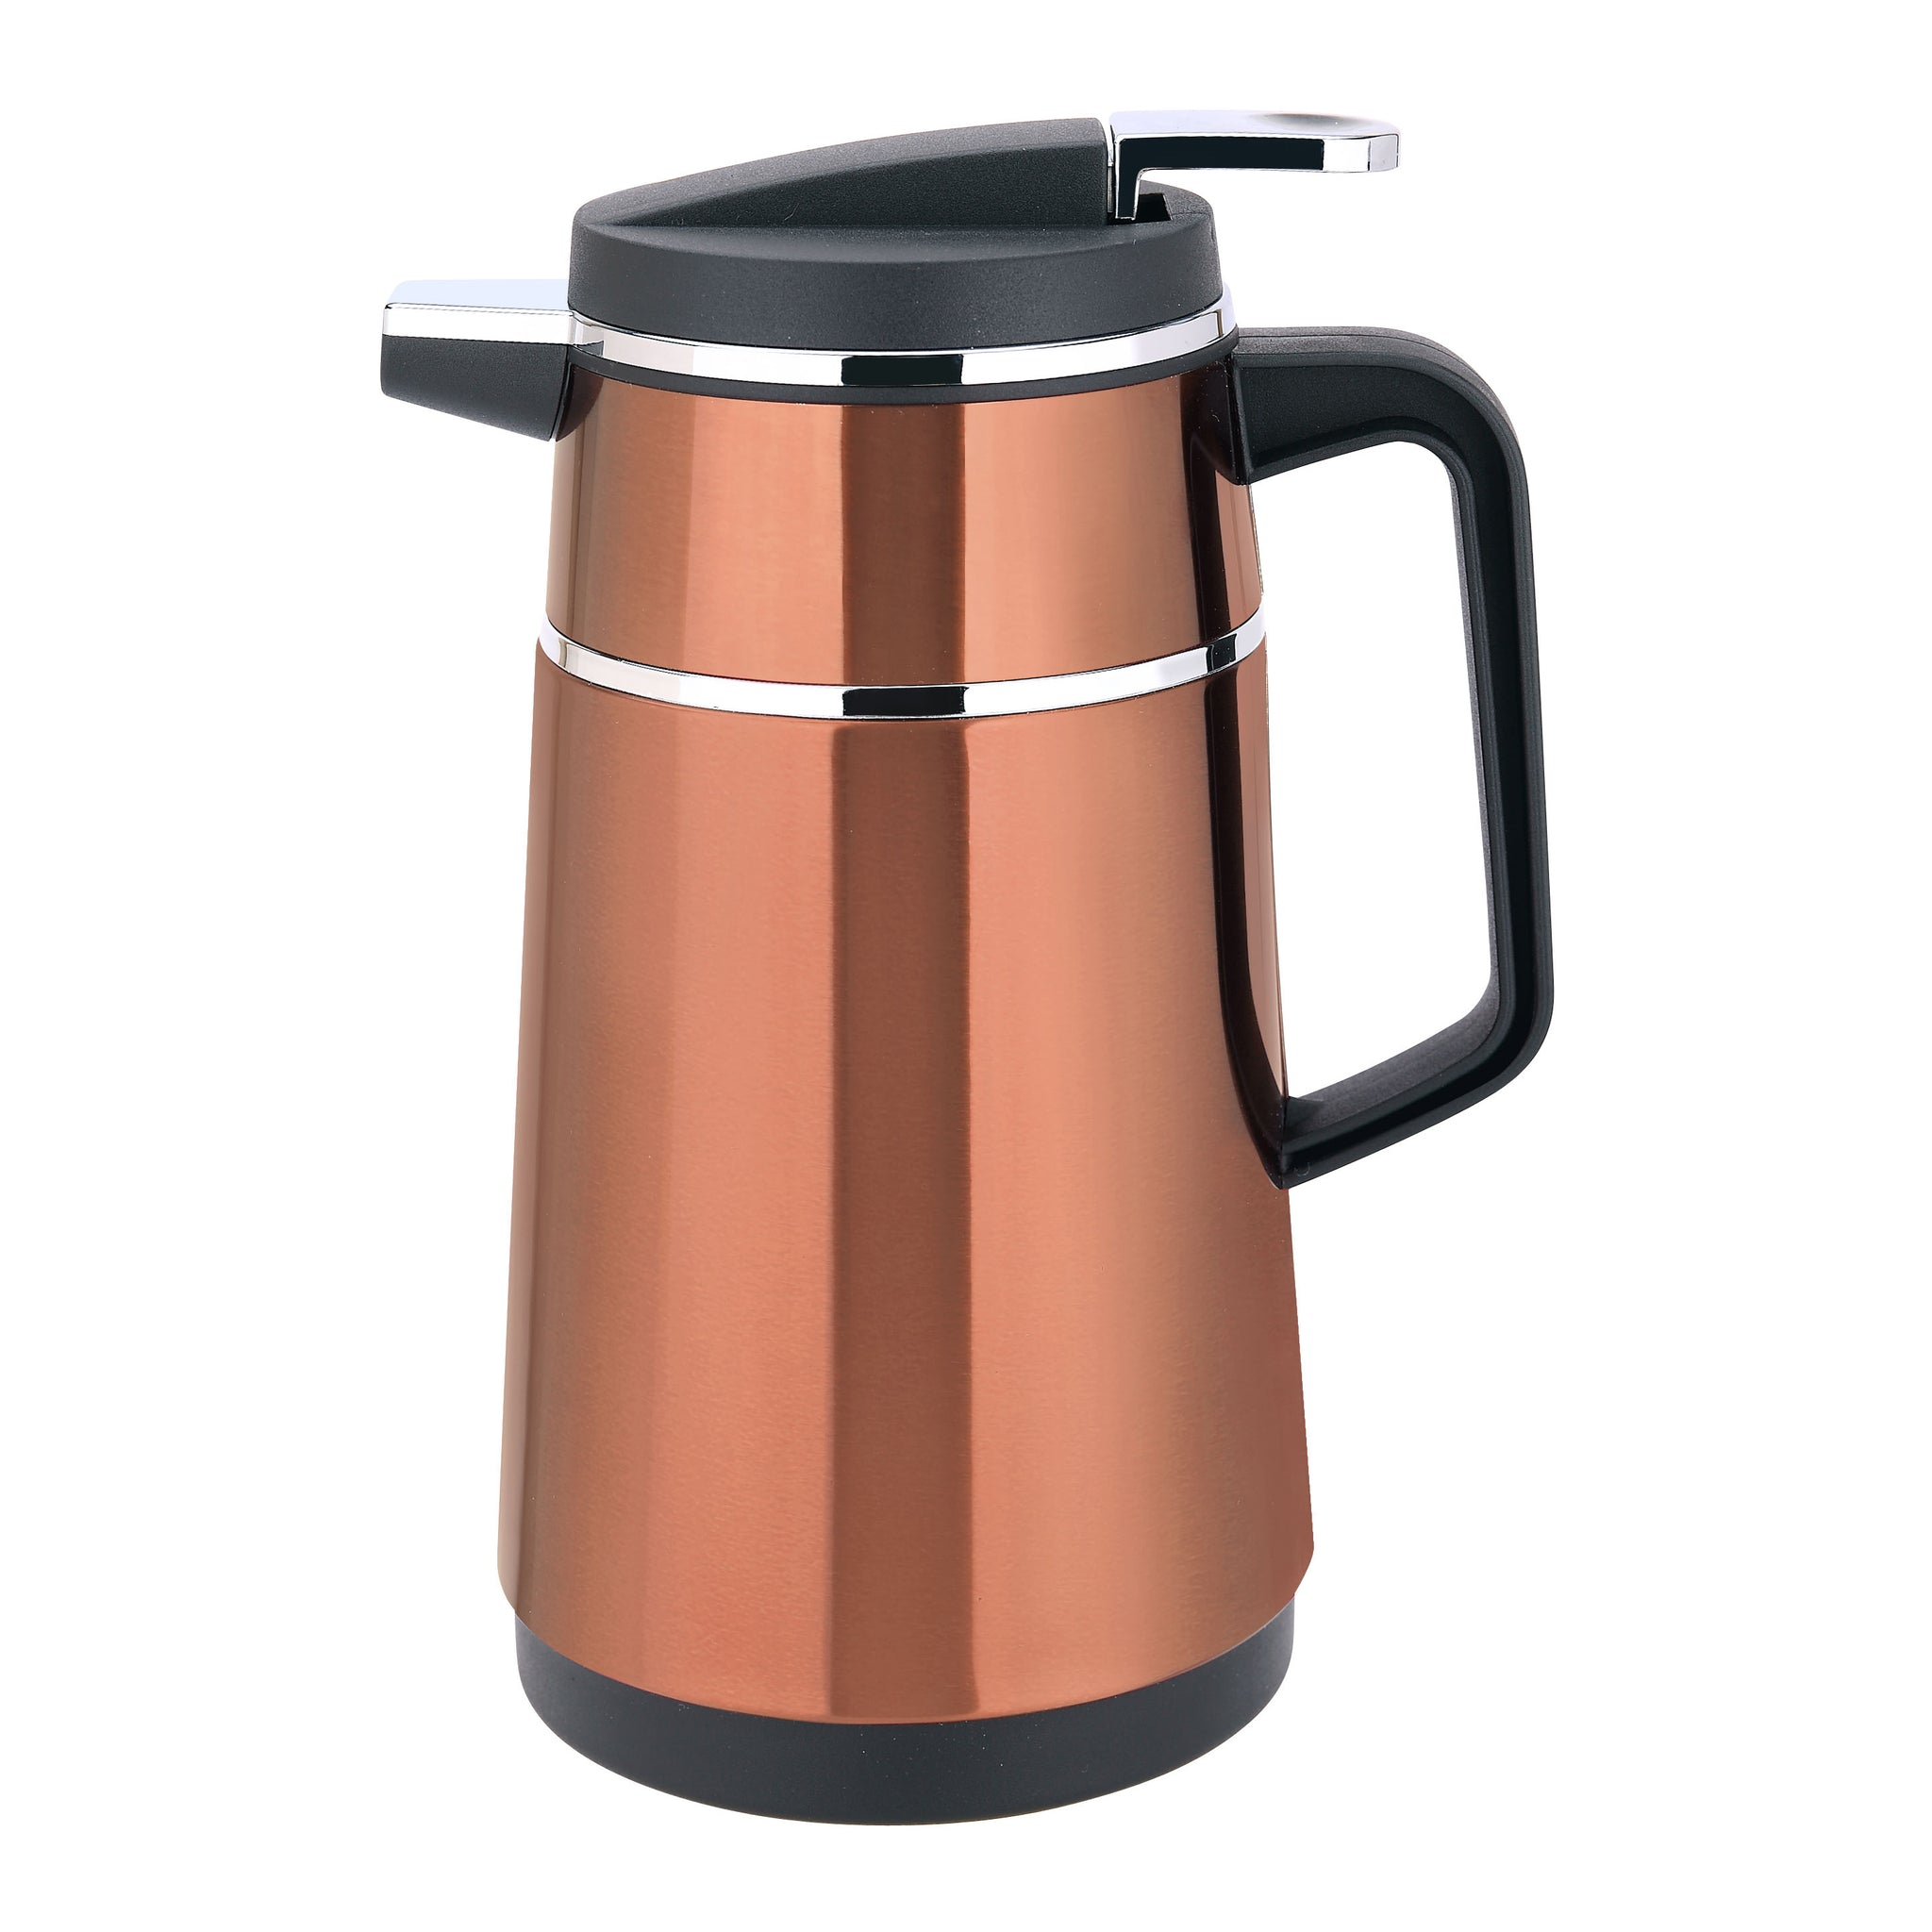 Royalford RF7838 - 1.3 Litre Stainless Steel Sienna Vacuum Flask -  Heat Insulated Thermos for Keeping Hot/Cold Long Hour Heat/Cold Retention, Multi-Walled, Hot Water, Tea, Beverage | Ideal for Social Occasion & Outings (Silver)